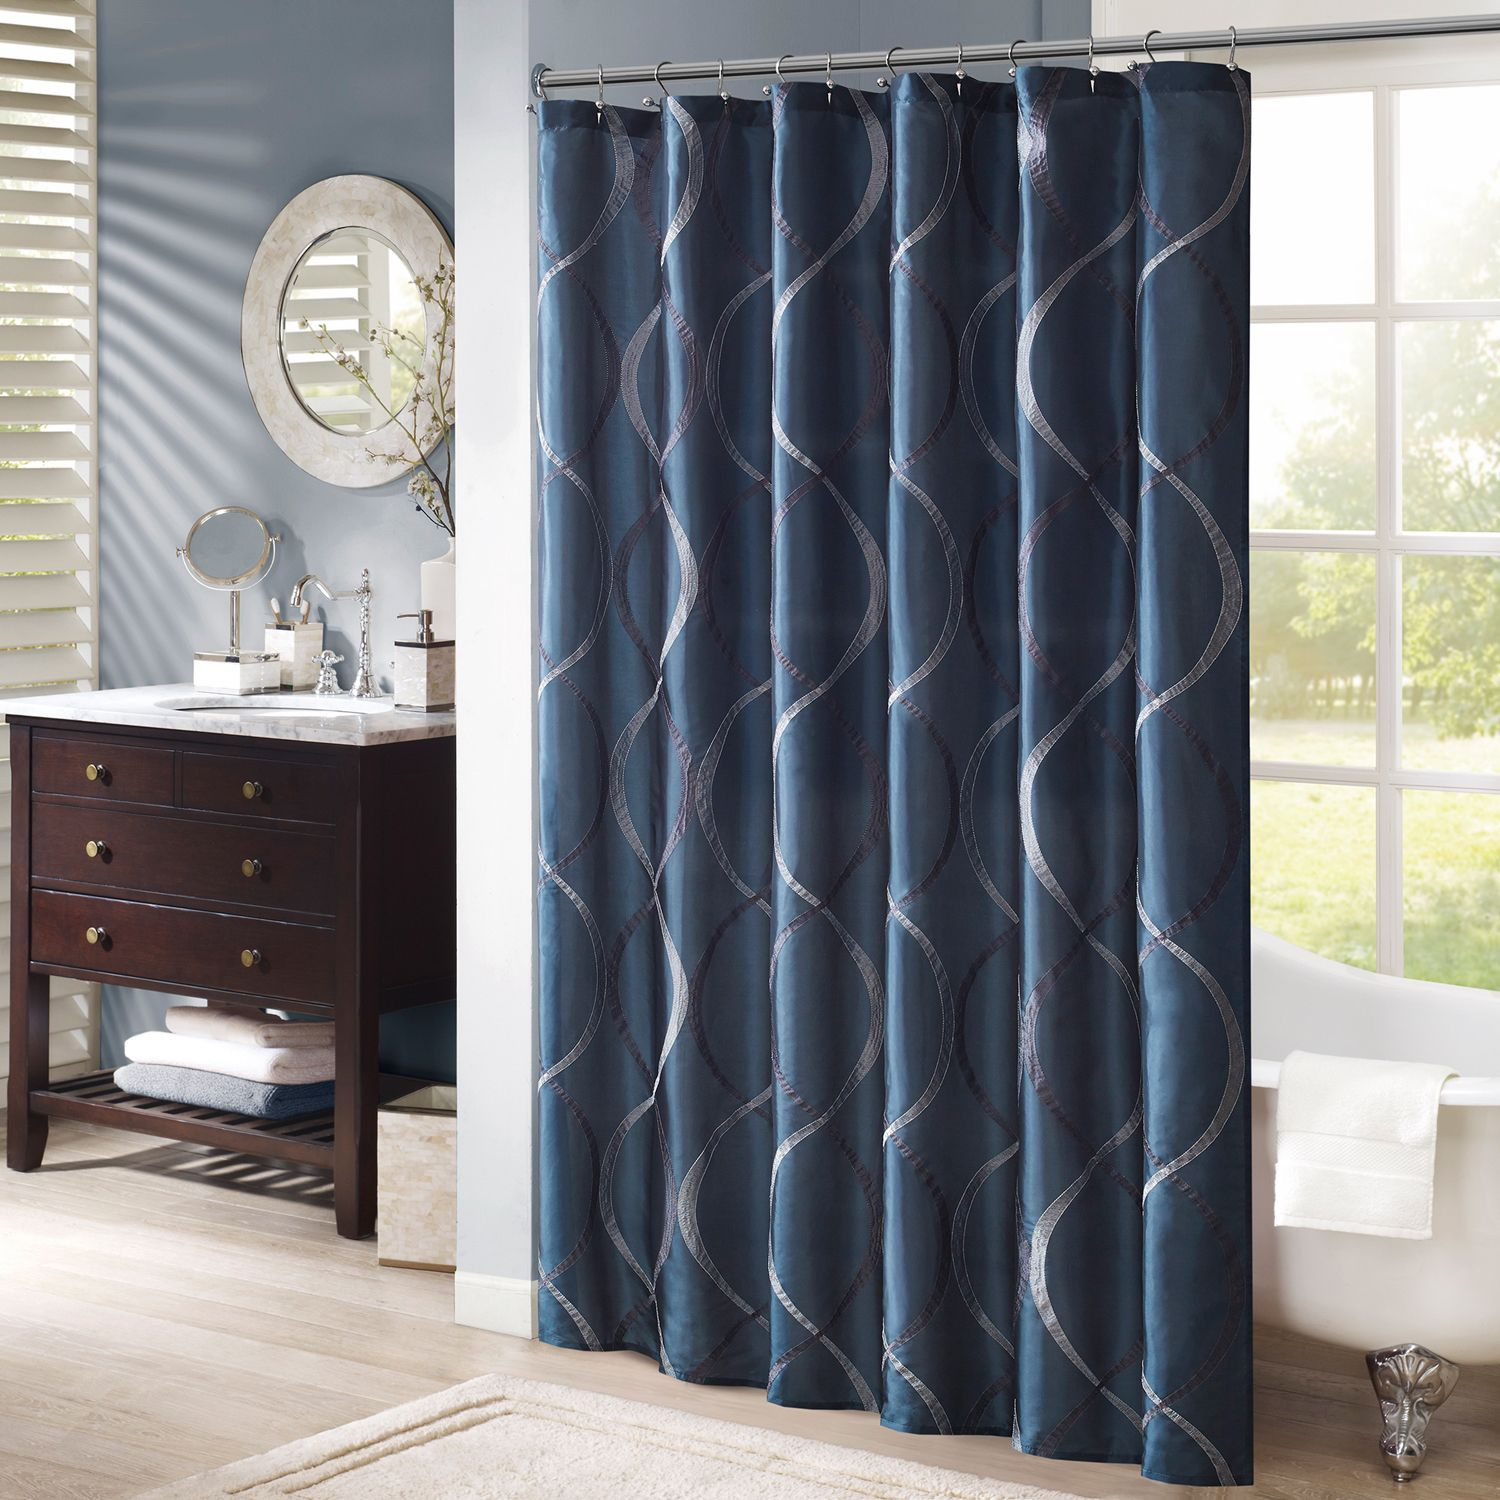 Madison Park Serendipity Embroidered Shower Curtain. Charcoal Navy Ivory